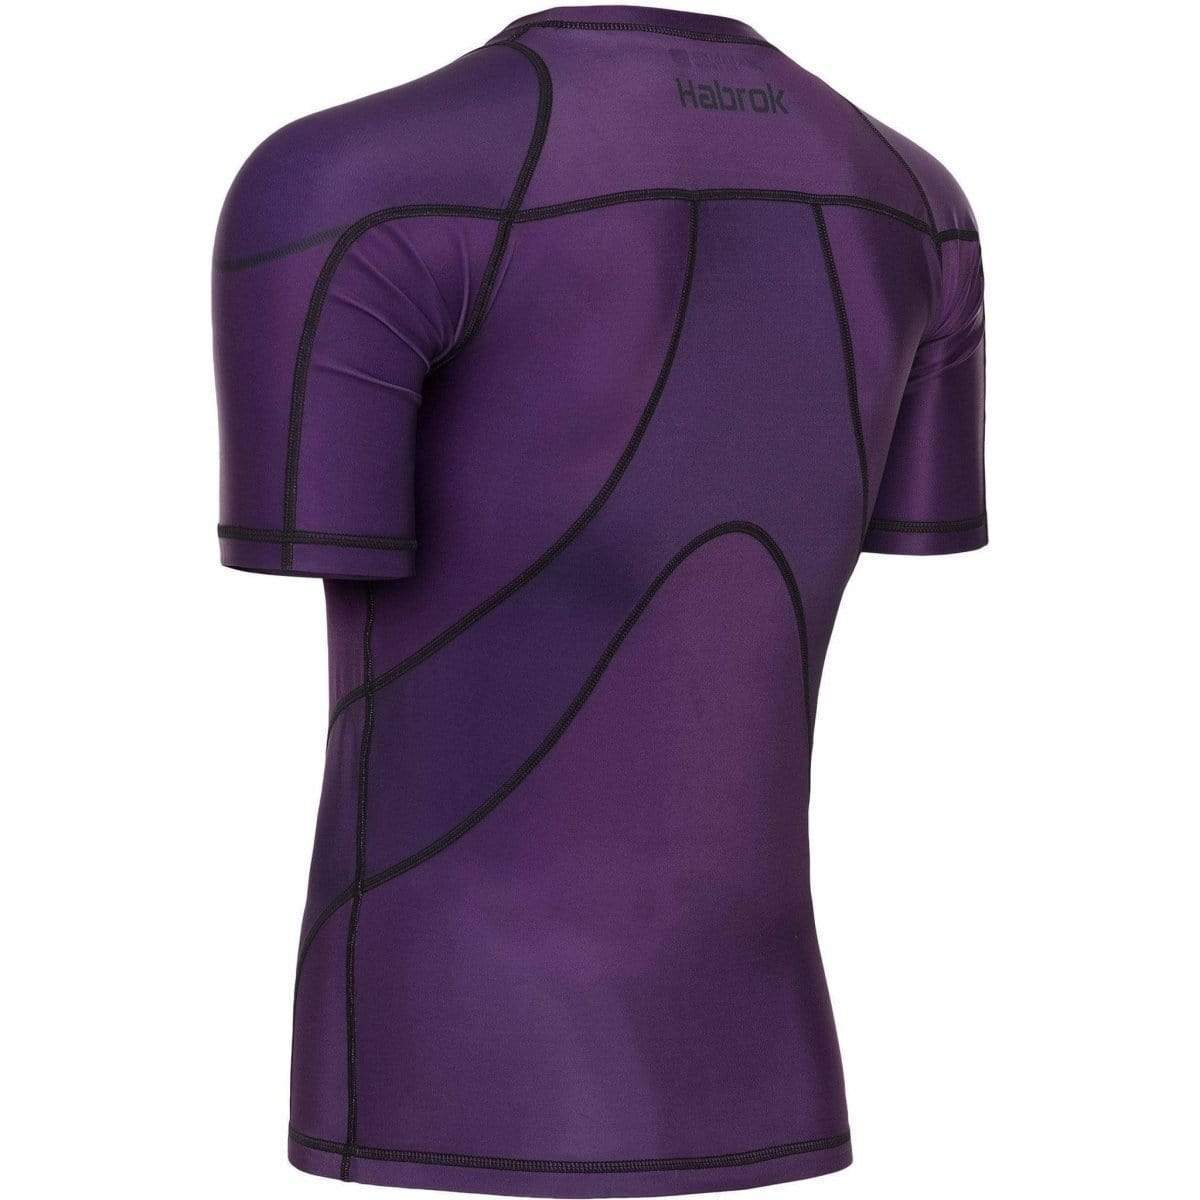 Habrok Rash Guard Pugnator 2.0 | Rash Guard | Half Sleeve | Men | Purple Pugnator | BJJ Rash Guard | Habrok